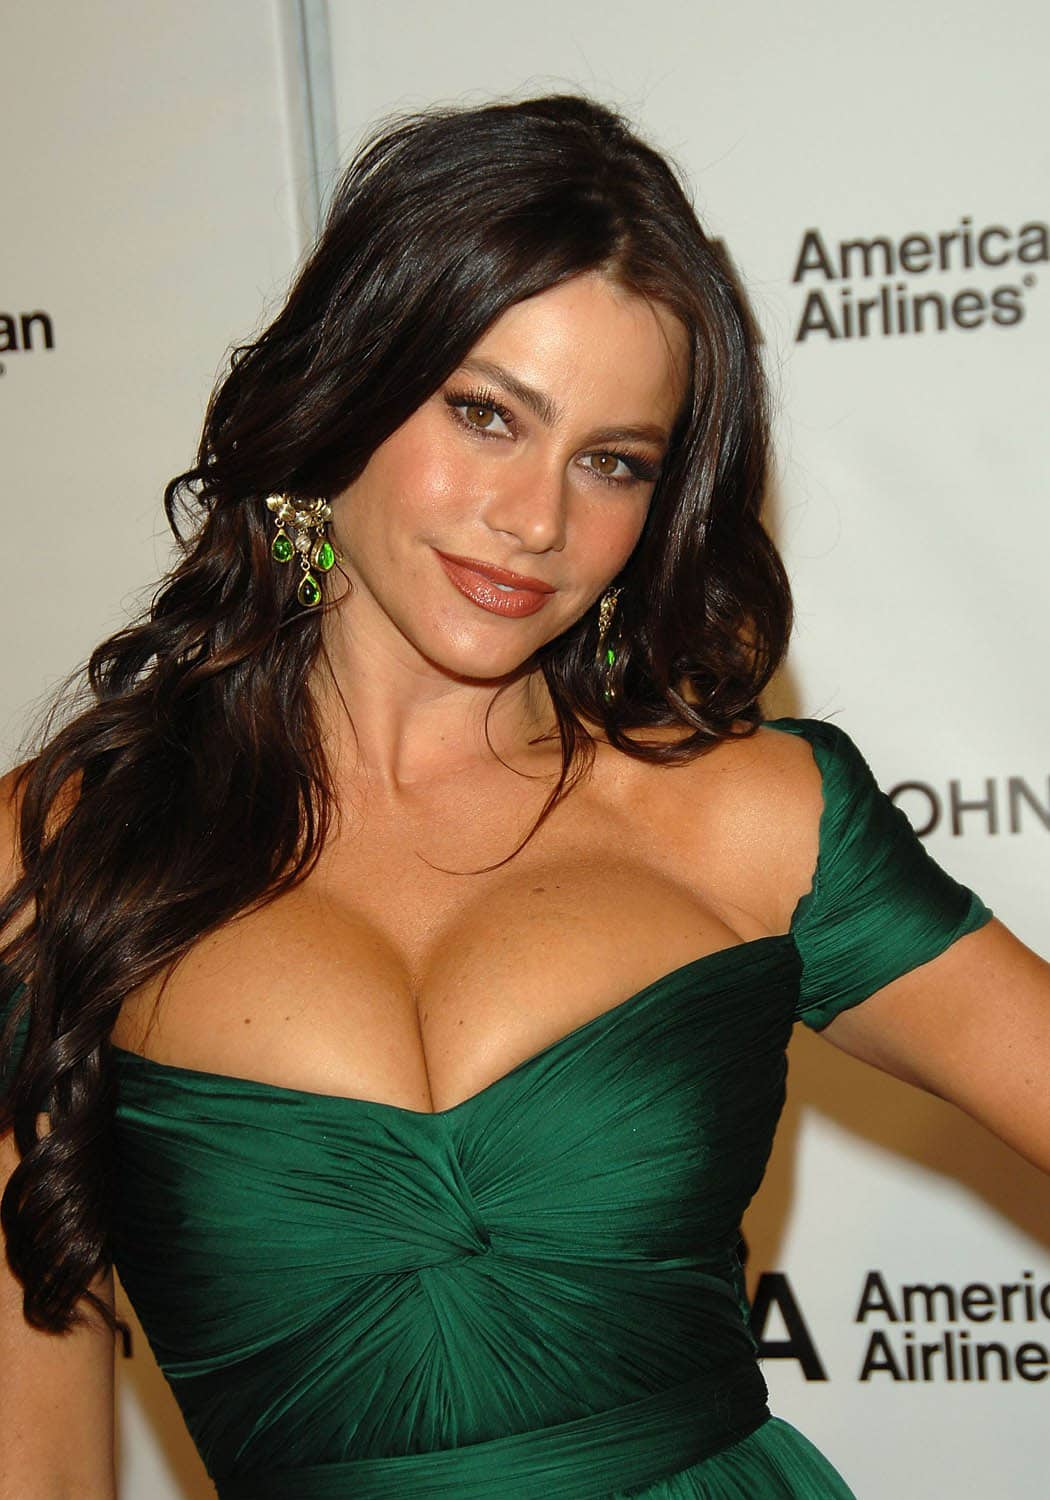 sofia vergara has cleavage popping out of green dress